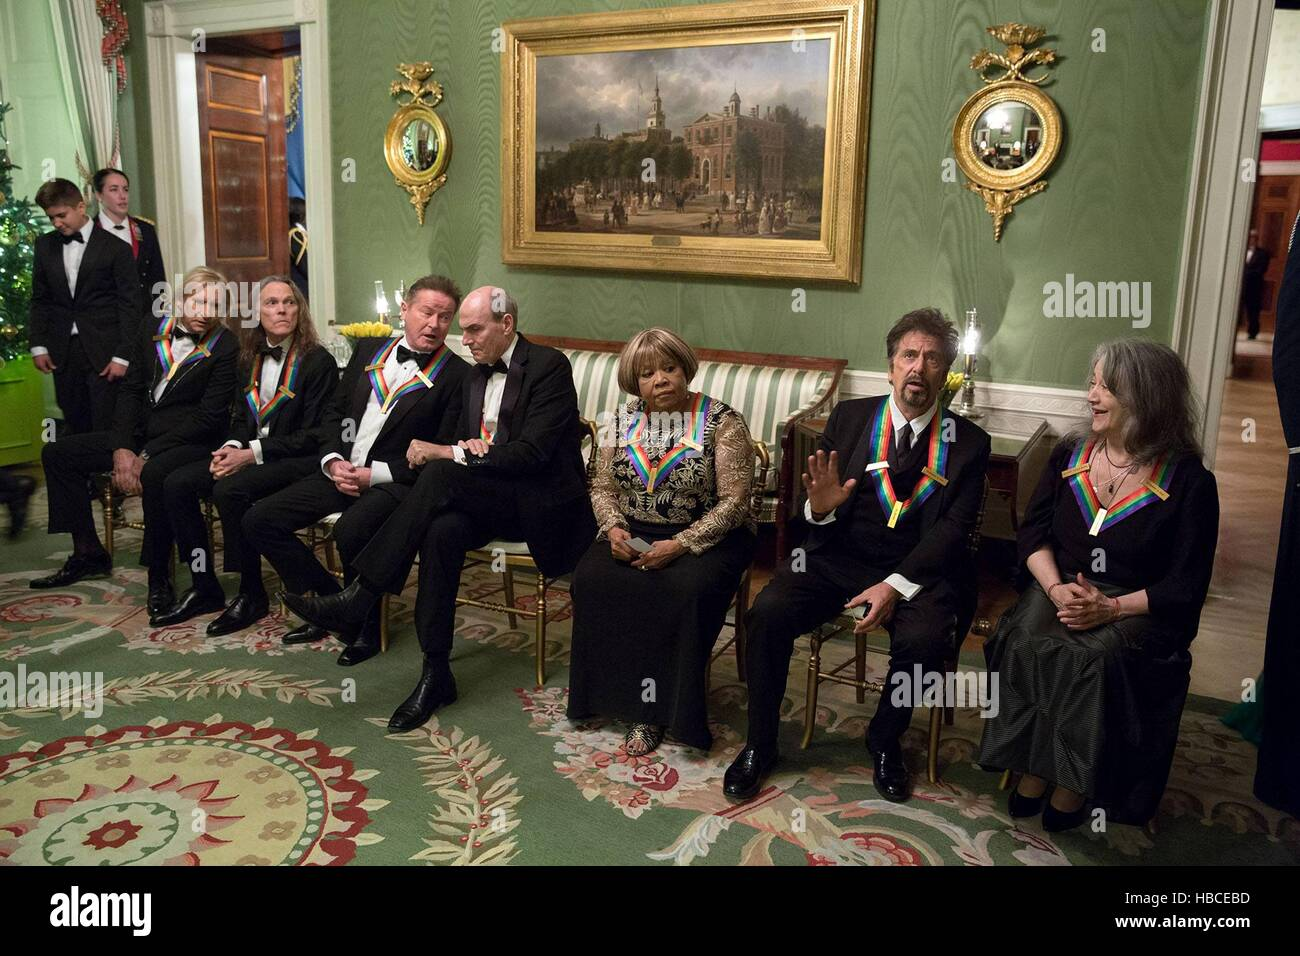 The 2016 Kennedy Center Honors wait before attending a reception in the East Room of the White House December 4, - Stock Image